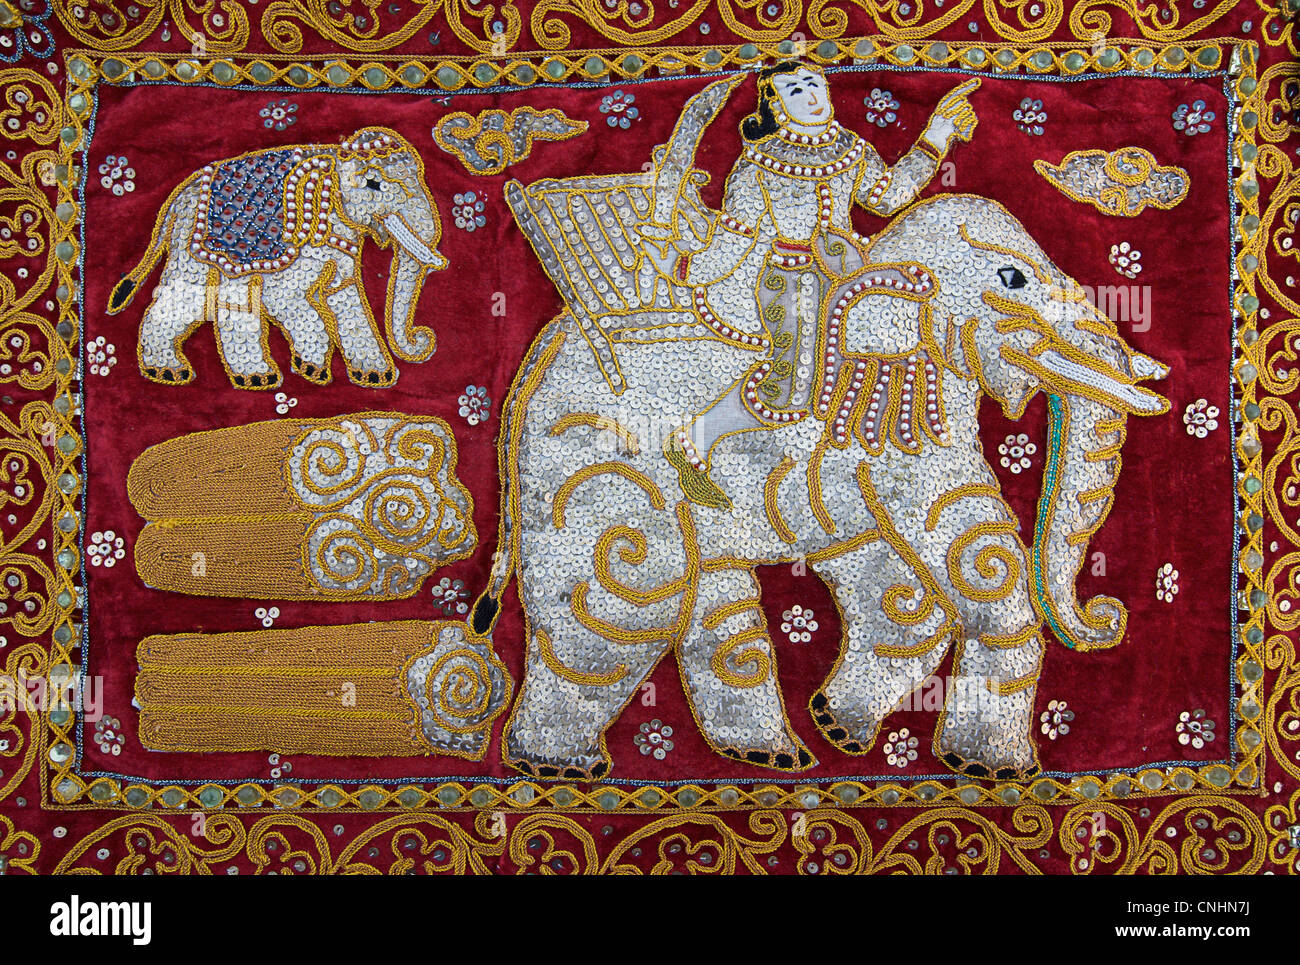 Elaborately decorated textiles called kalaga were traditionally used as coffin covers. old throughout Thailand & - Stock Image